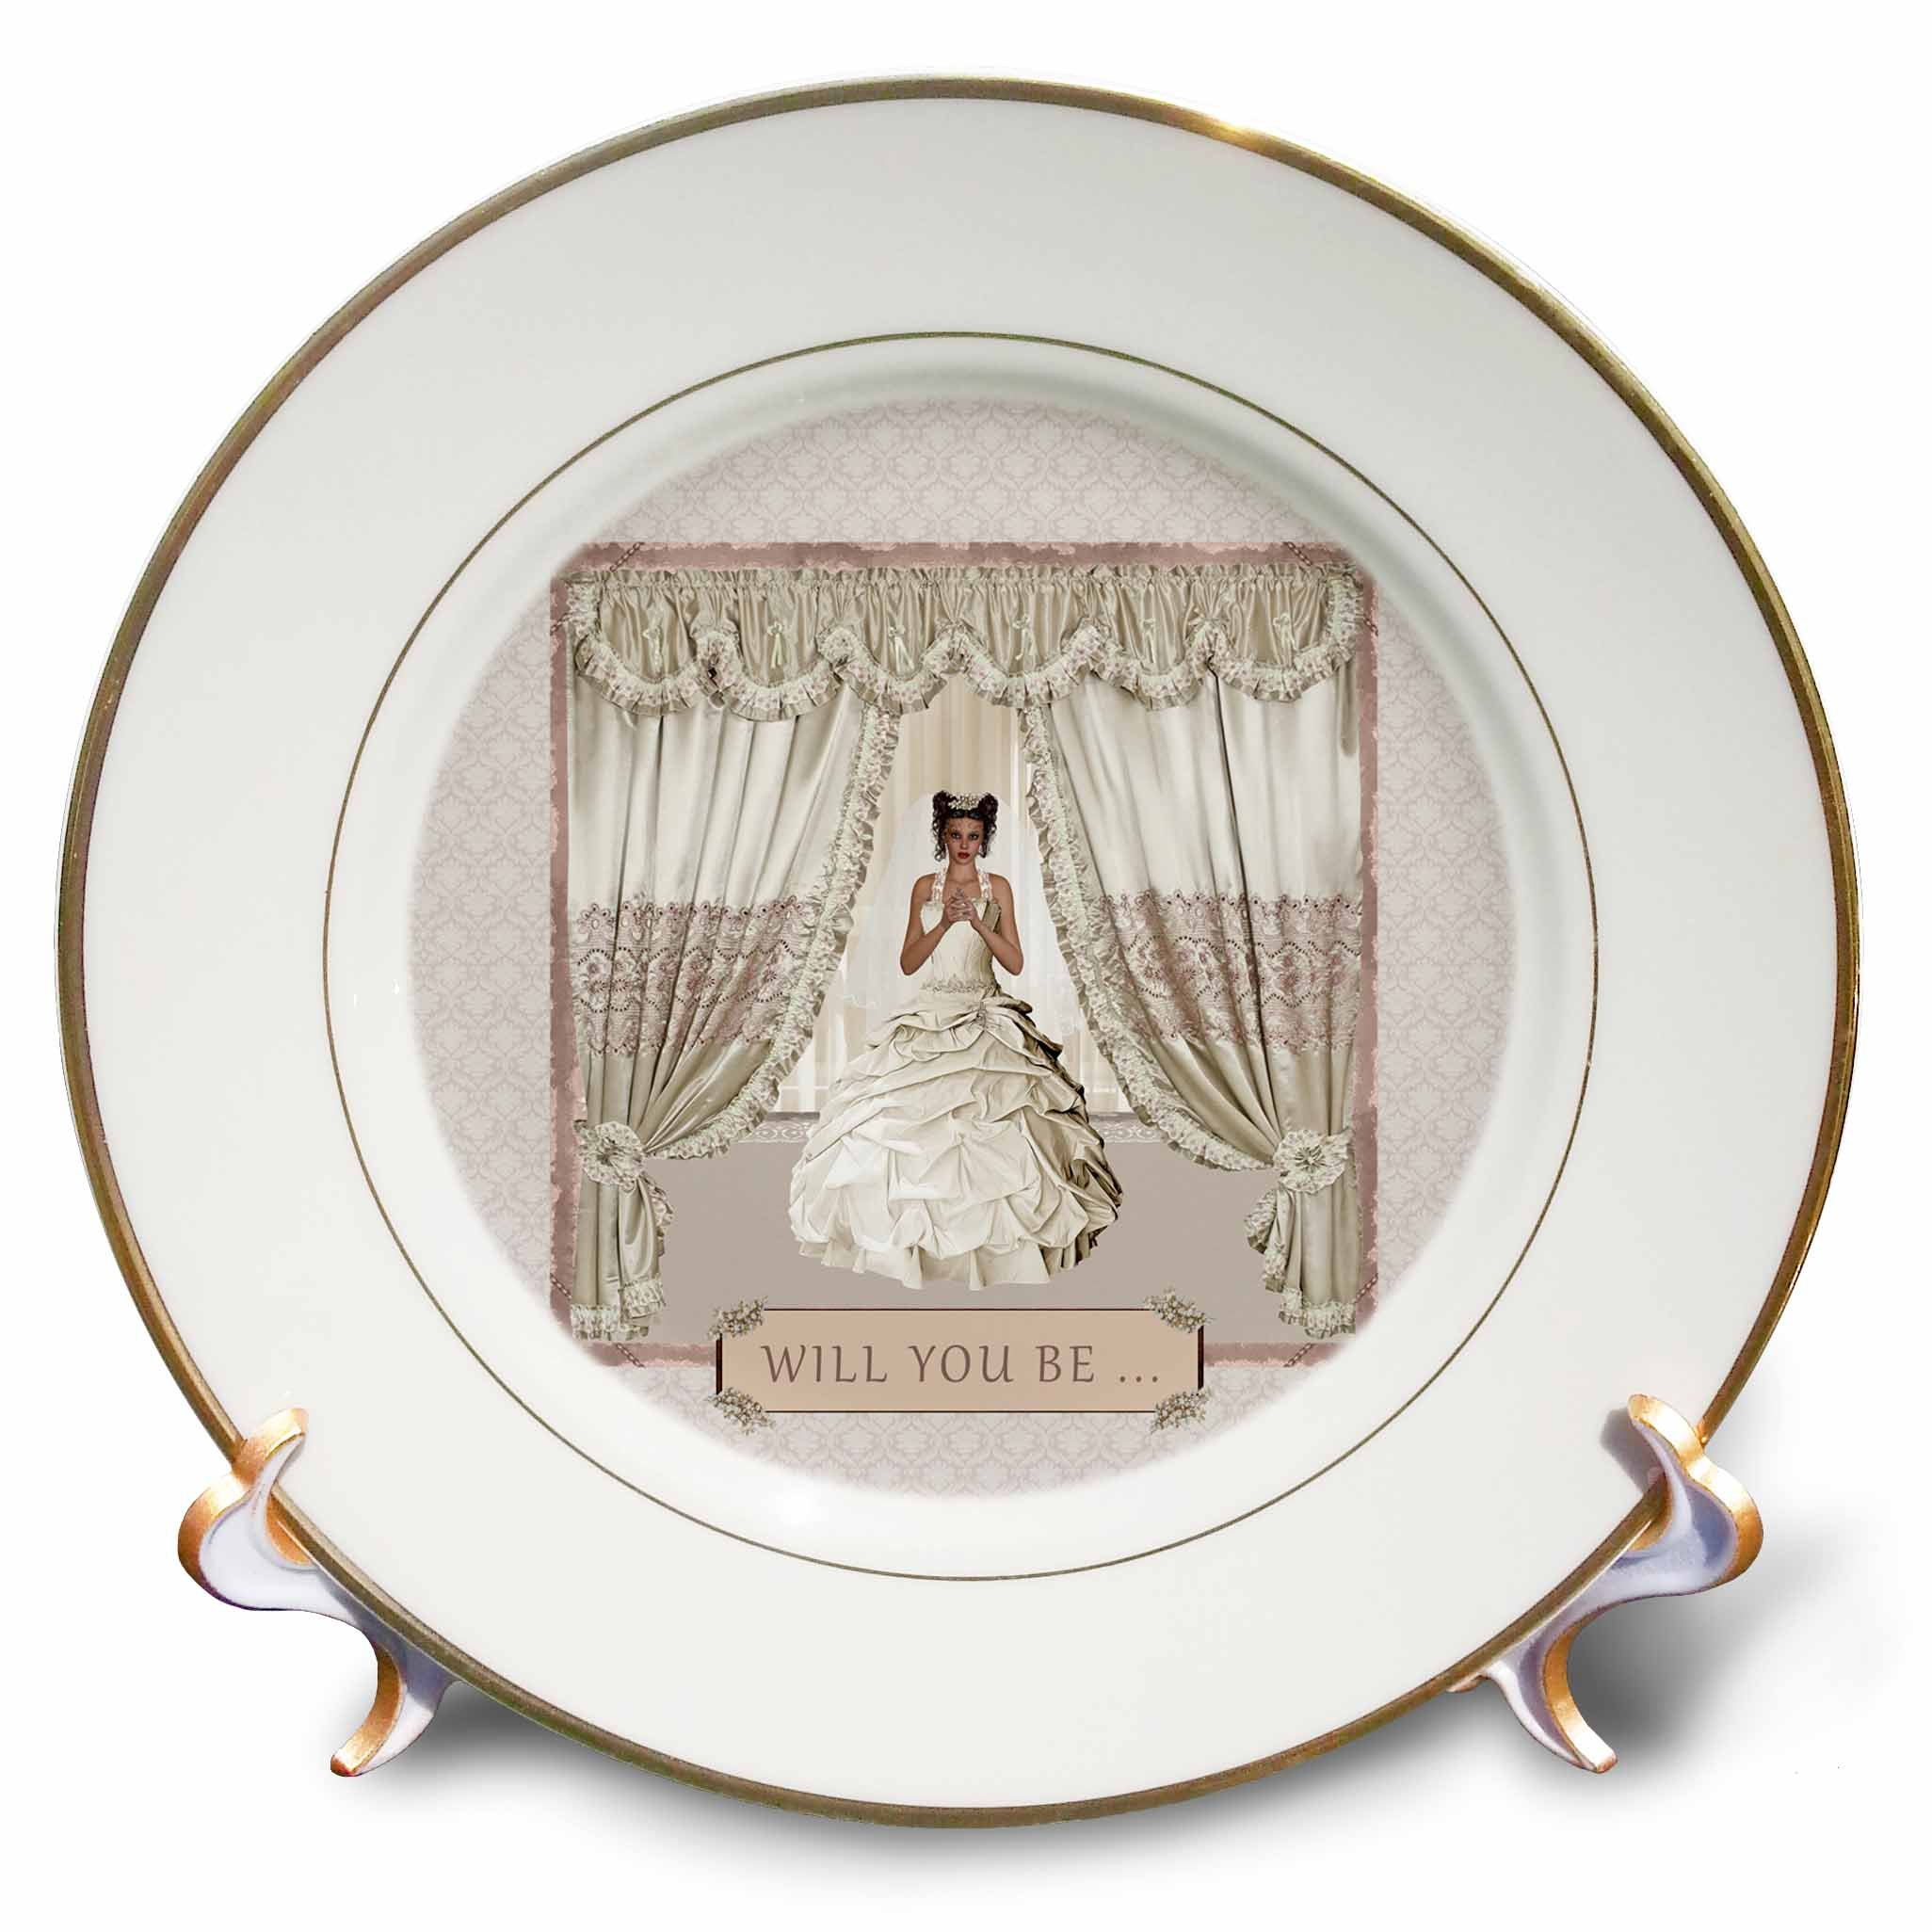 3dRose Beverly Turner Wedding Bridal Party Design - Bride in Wedding Gown, Drapes in Window, Will you be, Cream and Rose - 8 inch Porcelain Plate (cp_282067_1) by 3dRose (Image #1)